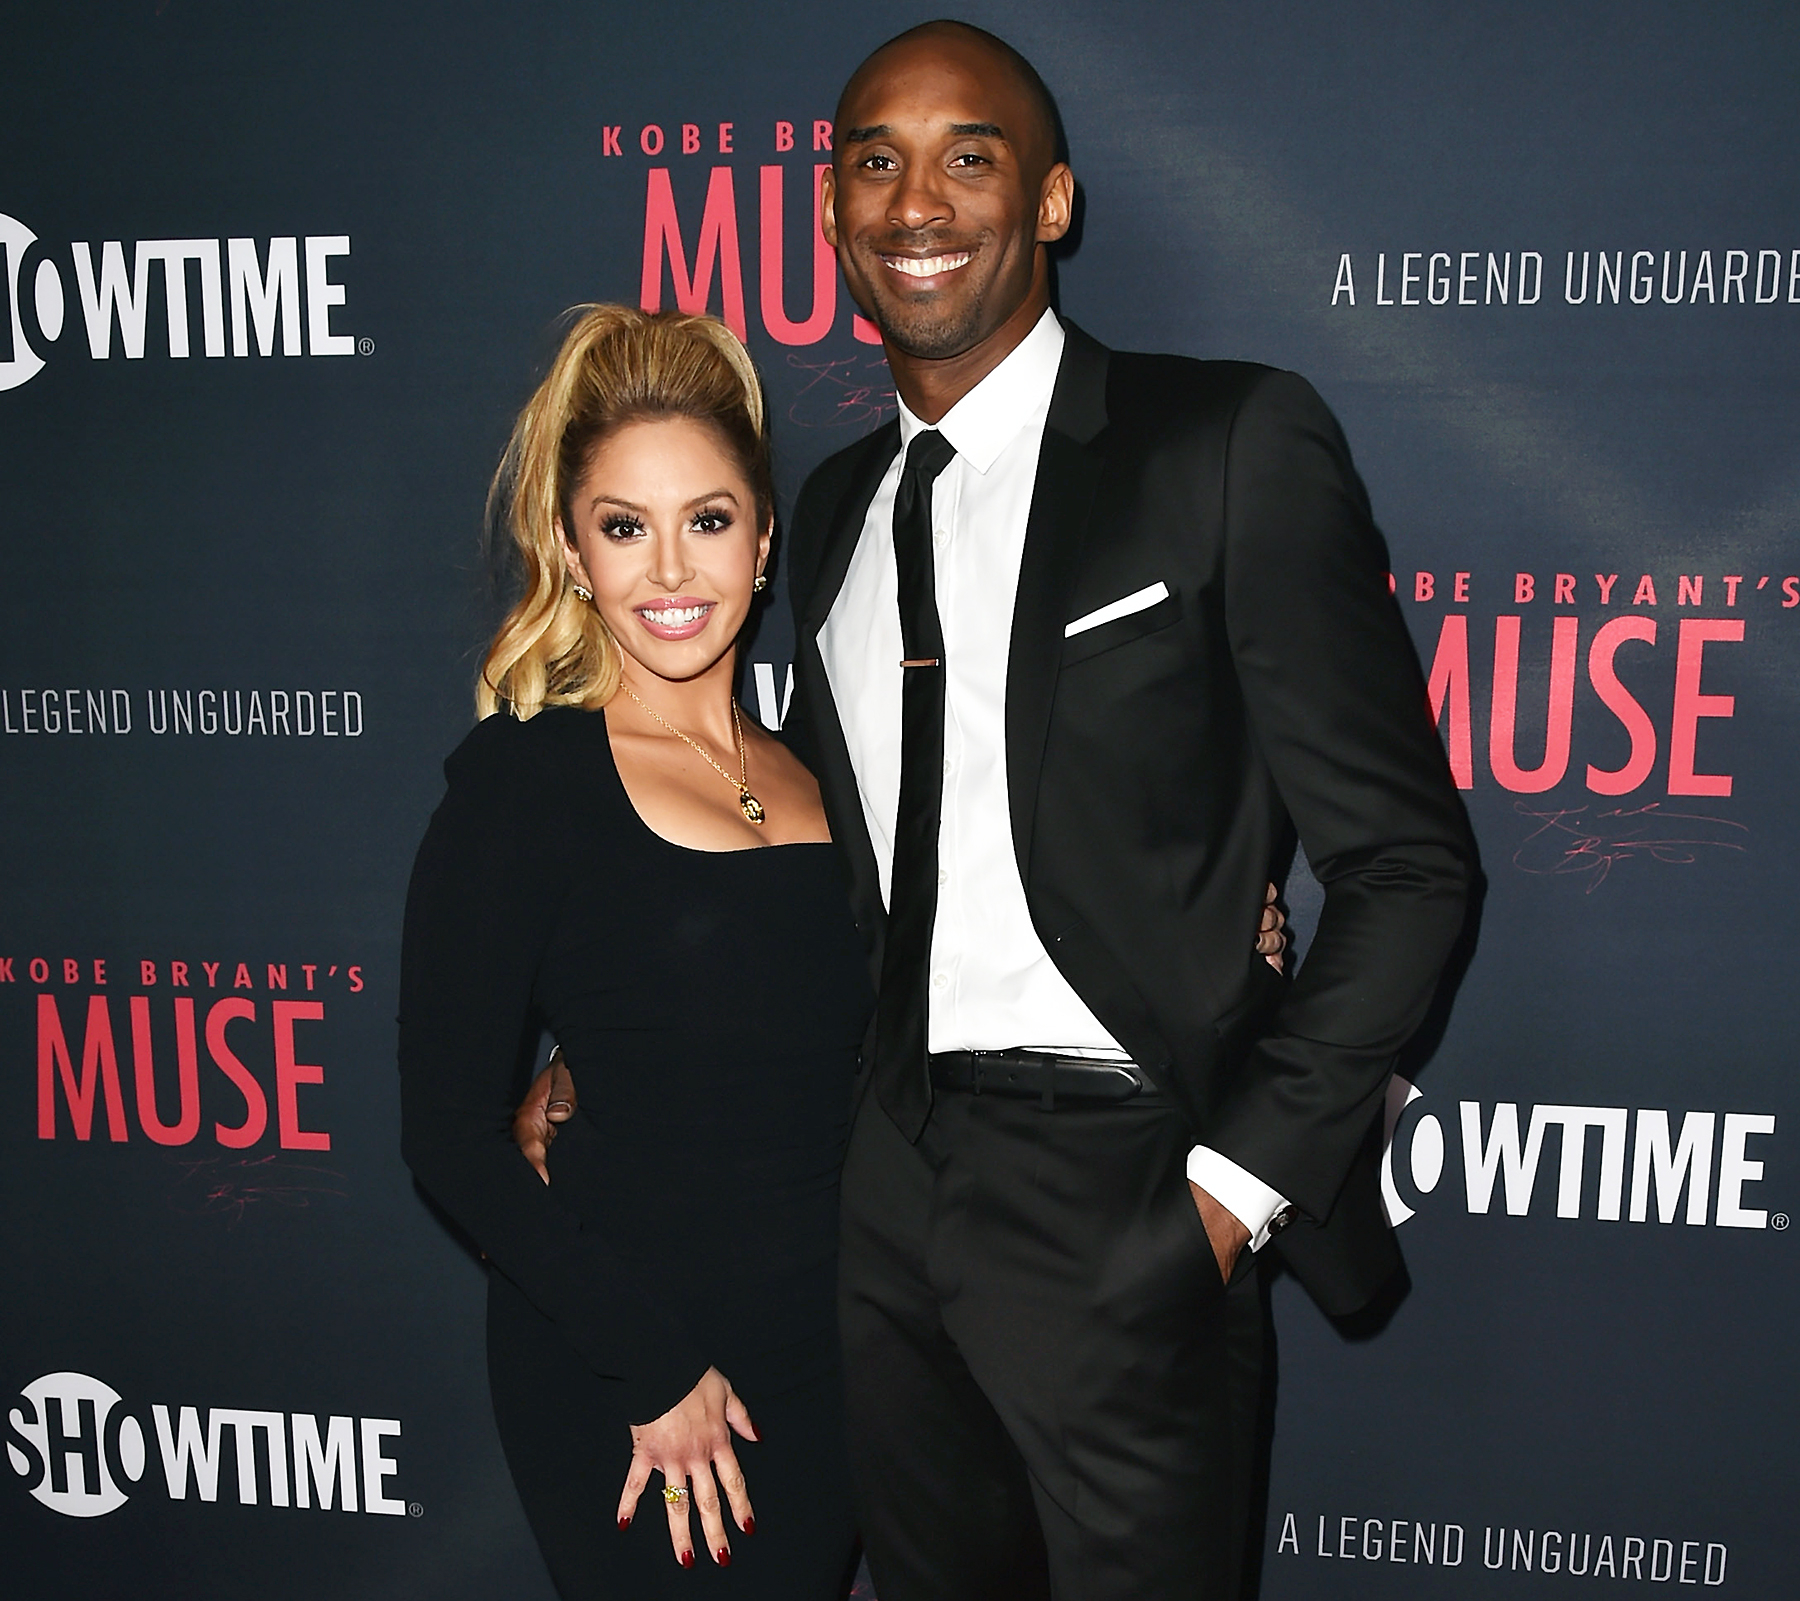 Kobe Bryants Wife Vanessa Gives Birth to Third Child